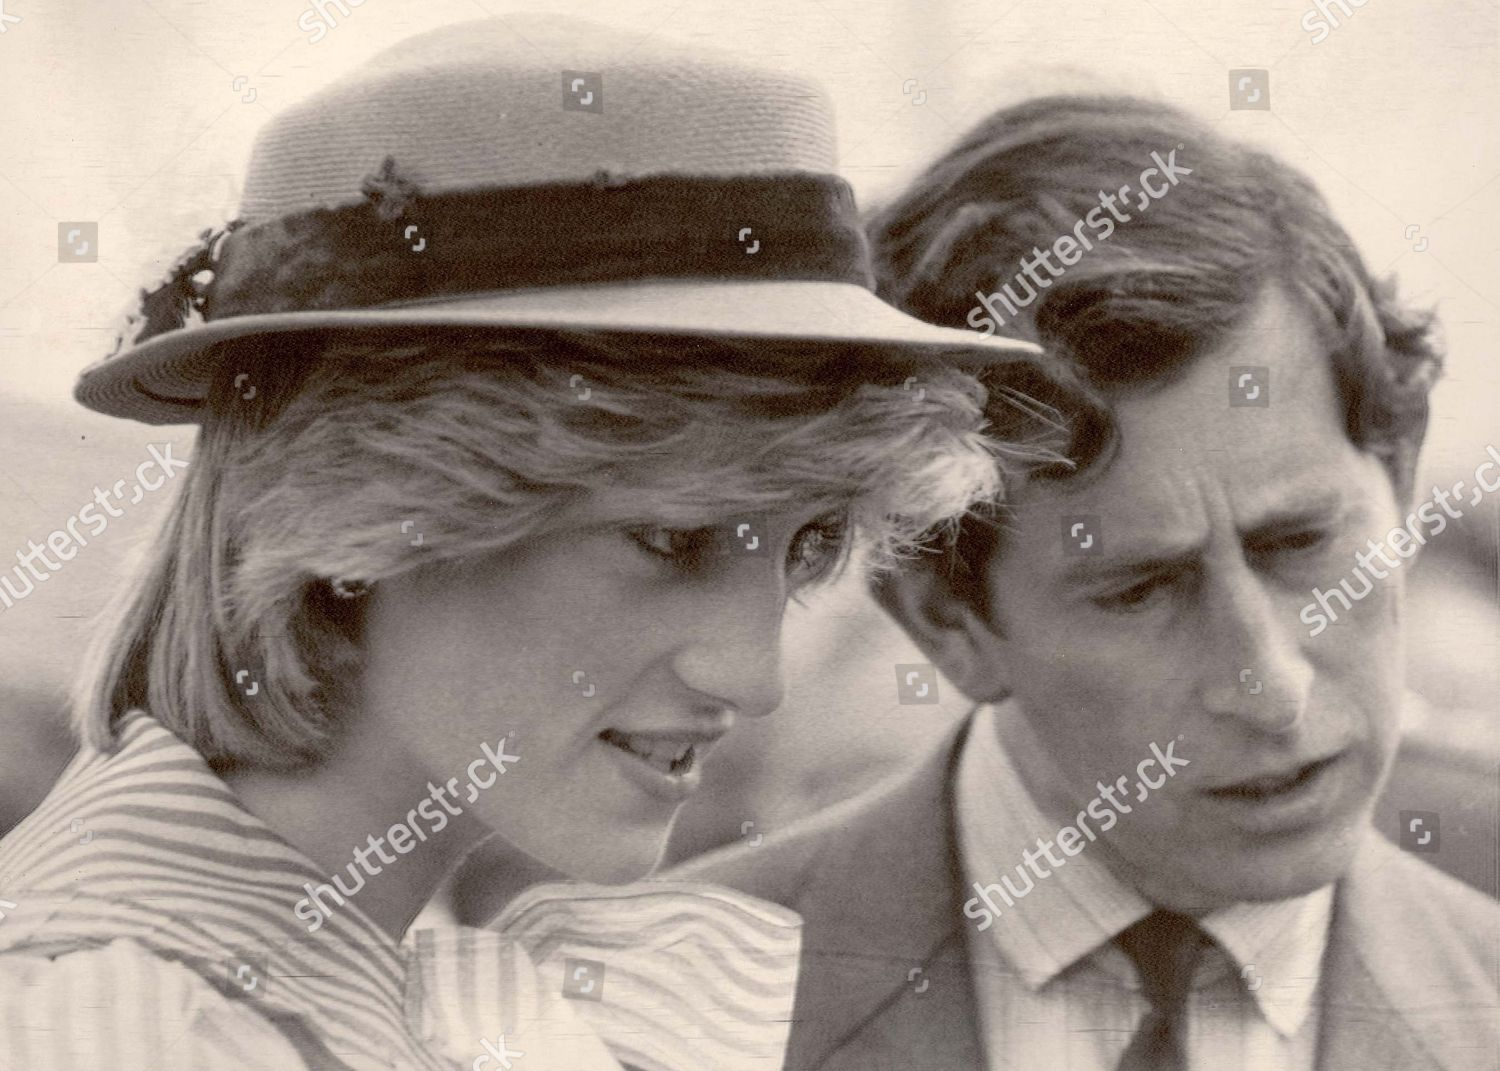 princess diana prince charles editorial stock photo stock image shutterstock https www shutterstock com editorial image editorial prince princess of wales tour of australia new zealand 30th march 1983 prince charles and princess diana at the rokeby school princess diana of wales died 3181997 1043023a